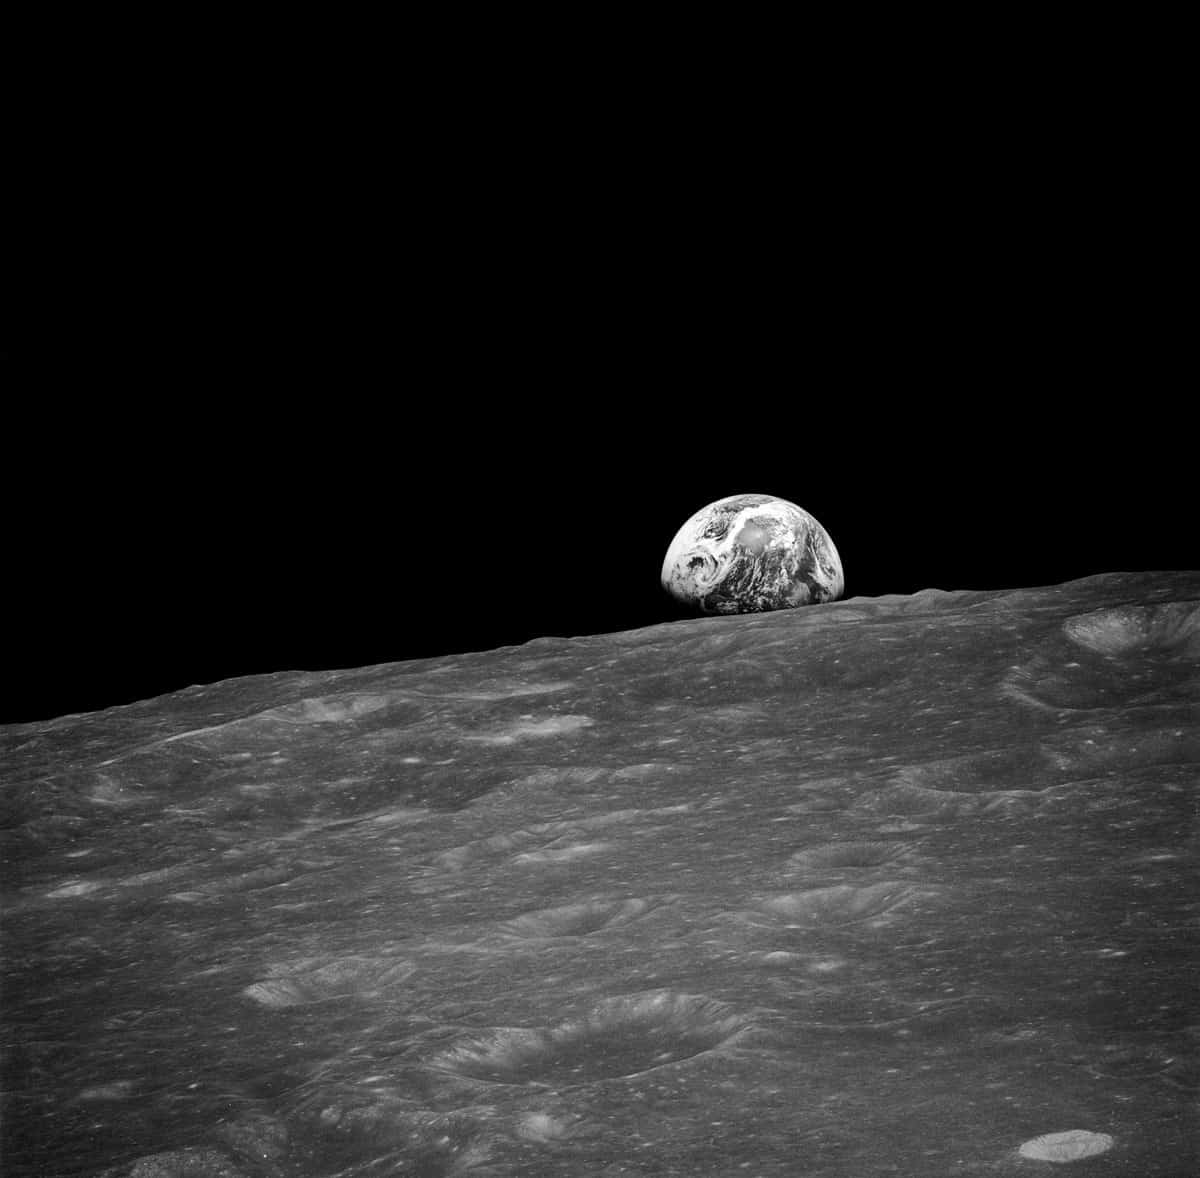 A black and white photograph of the Earth with the Moon in the foreground captured by an astronaut onboard Apollo 8, December 24, 1968.